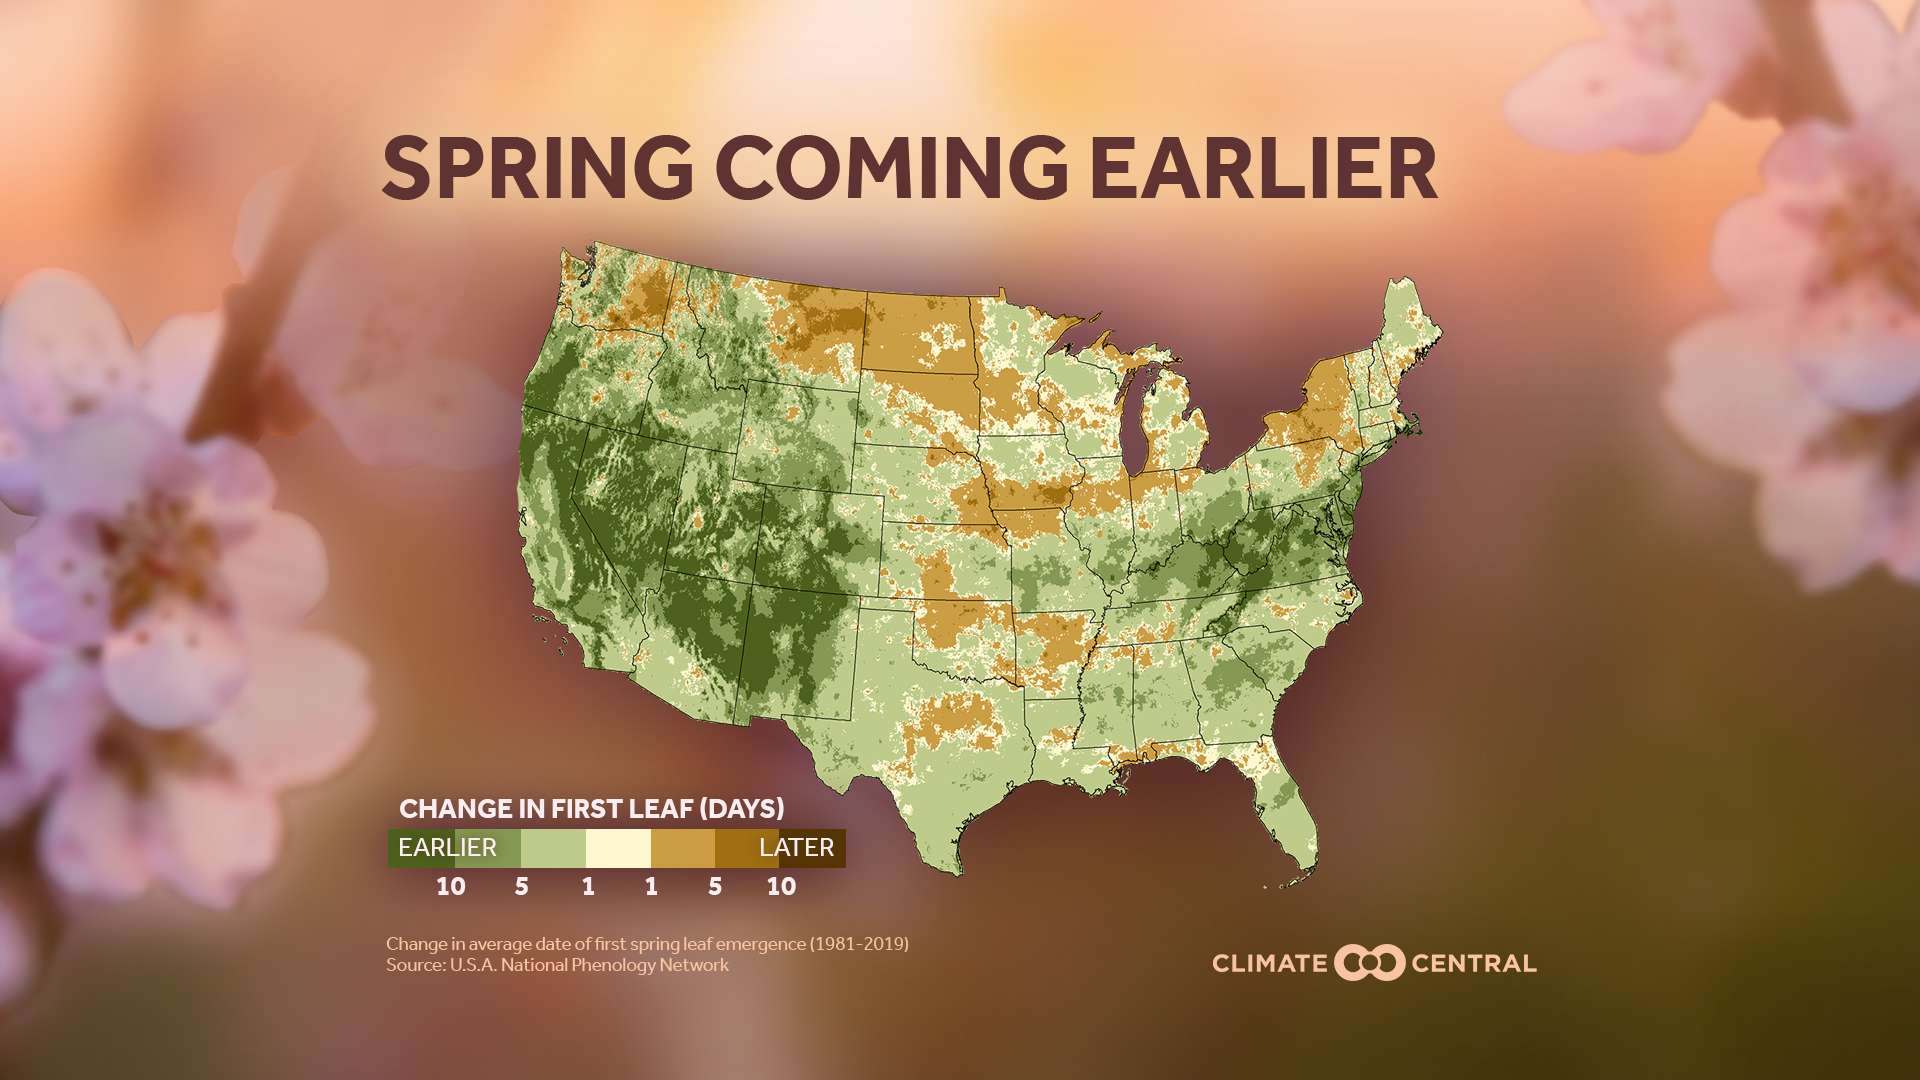 Spring Springing Earlier In Many U.S. Cities